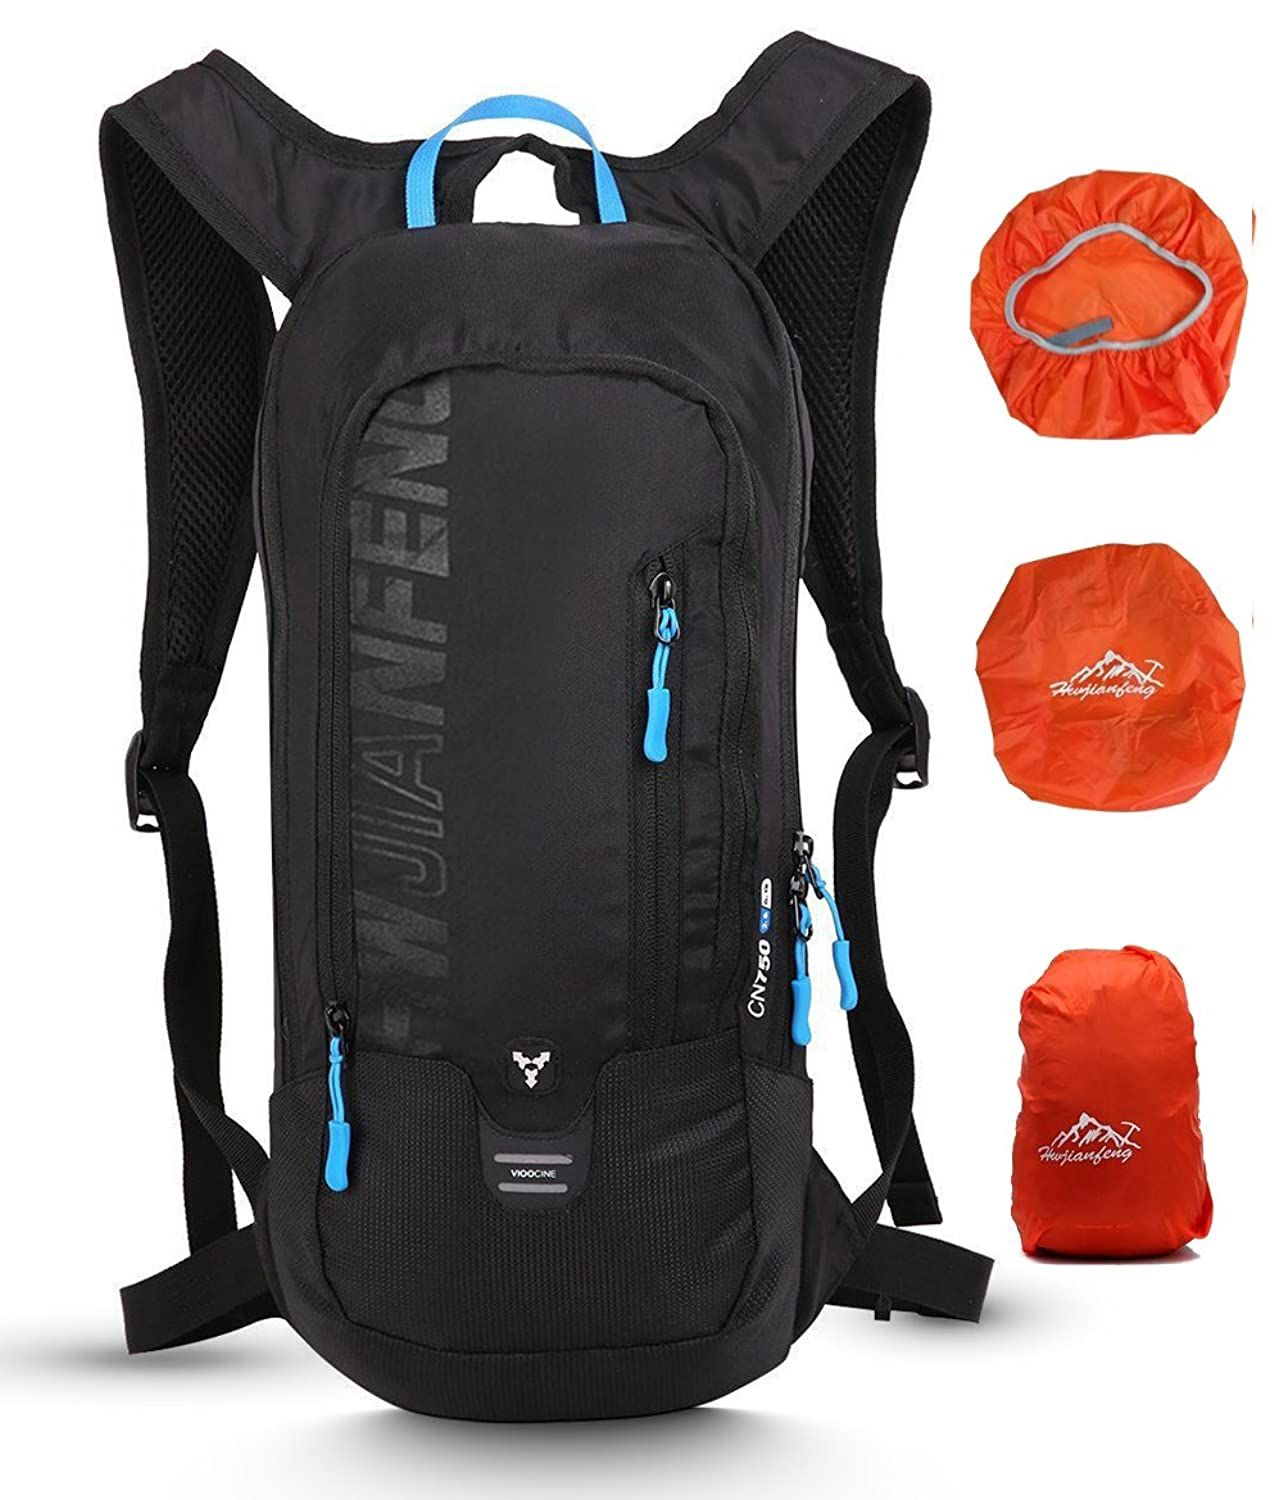 dbf3169c5e35 Lightweight Waterproof Small Backpack- Fenix Toulouse Handball